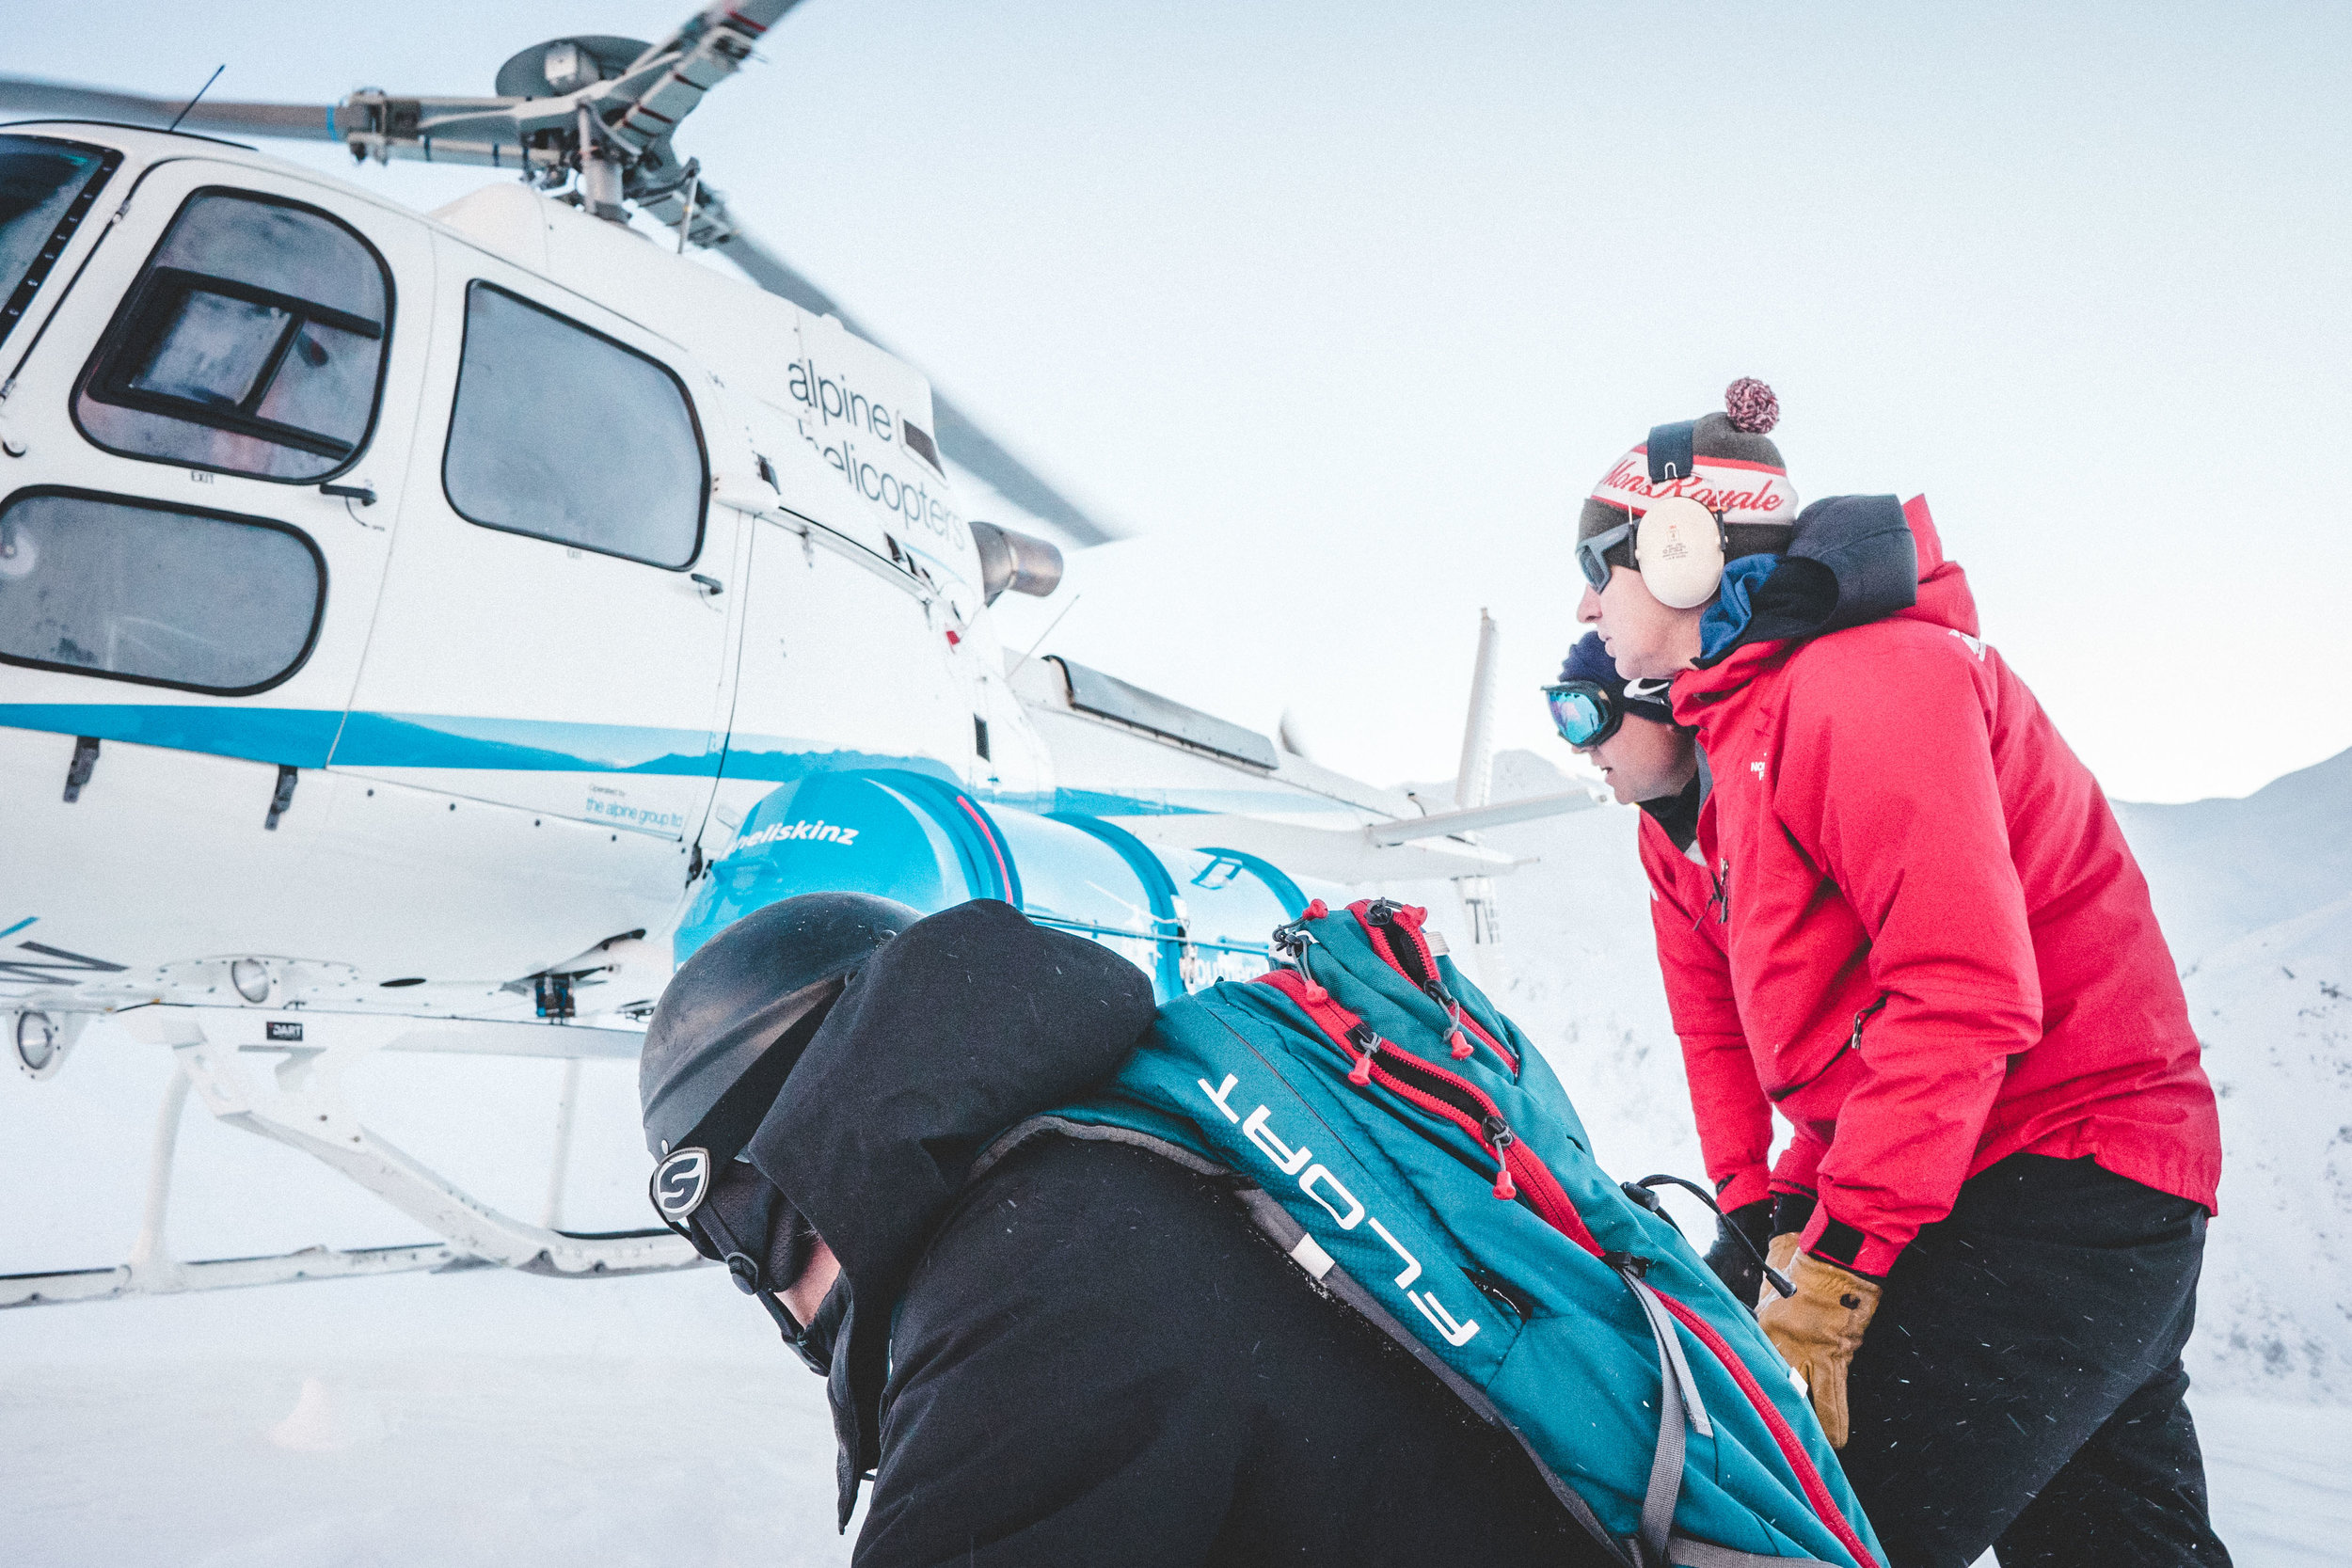 Ski. Heli. Rinse & repeat.